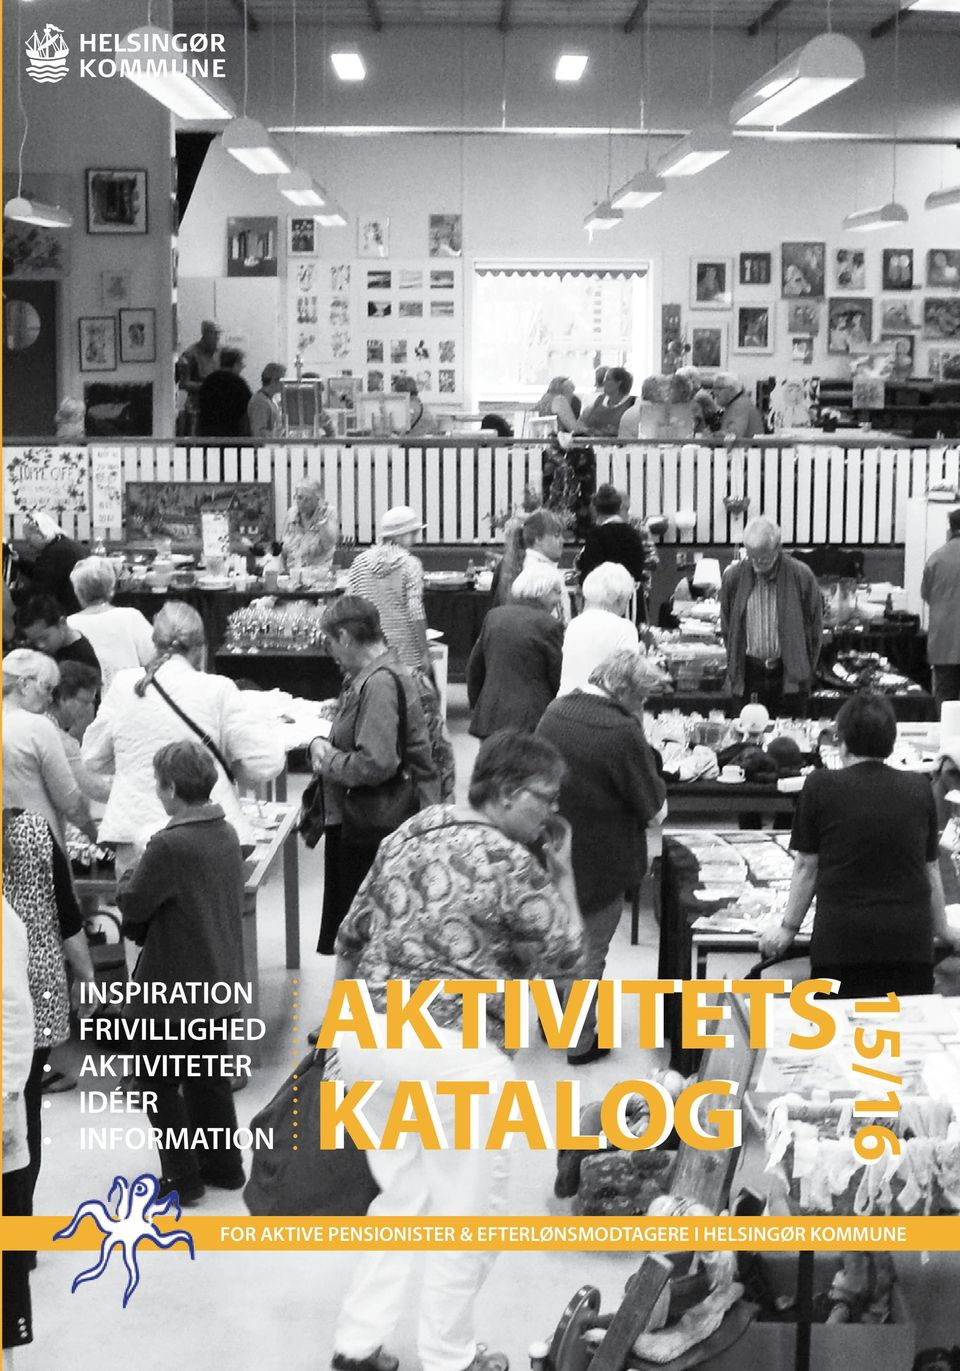 AKTIVITETS KATALOG 15/16 FOR AKTIVE